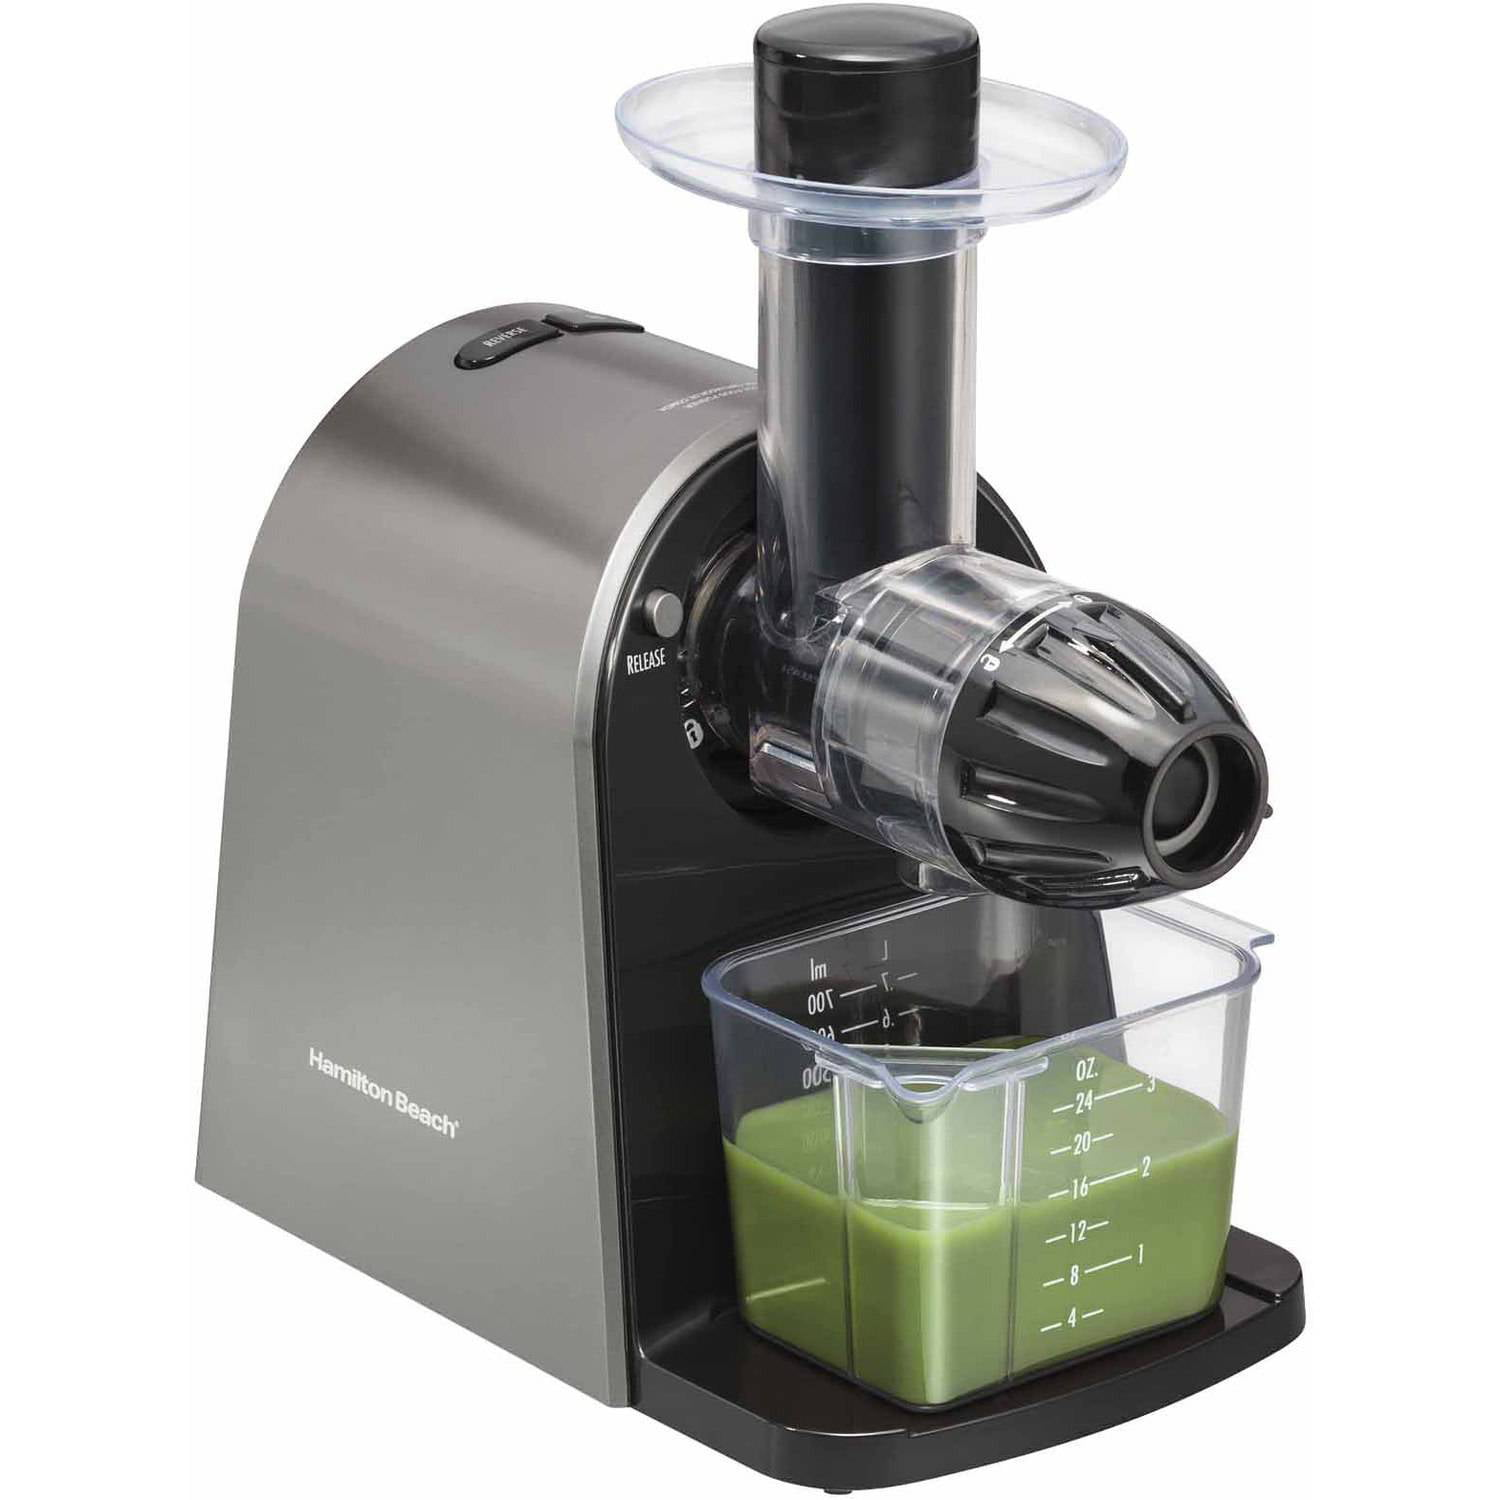 Slow Juicer Use : Cold Press Juicer Machine - Masticating Juicer Slow Juice Extractor Maker Electric Juicing ...